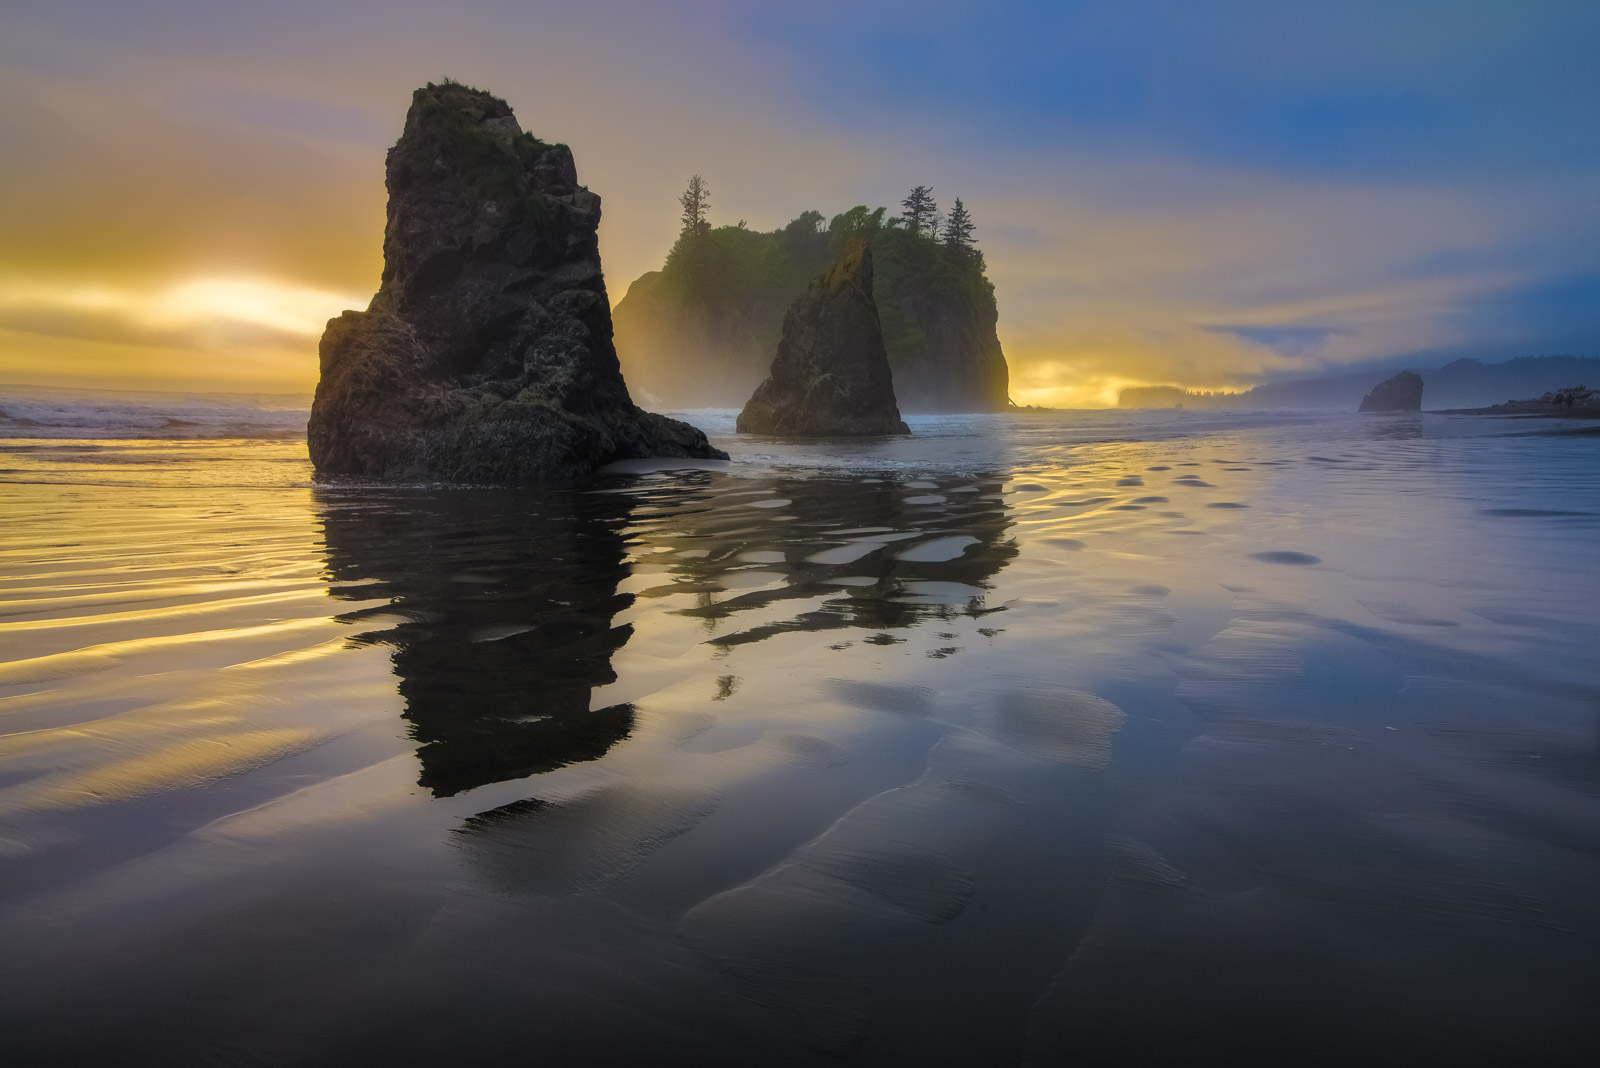 Limited Edition of 50 The coastline of Olympic National Park is one of the most dramatic shorelines in the United States. With...